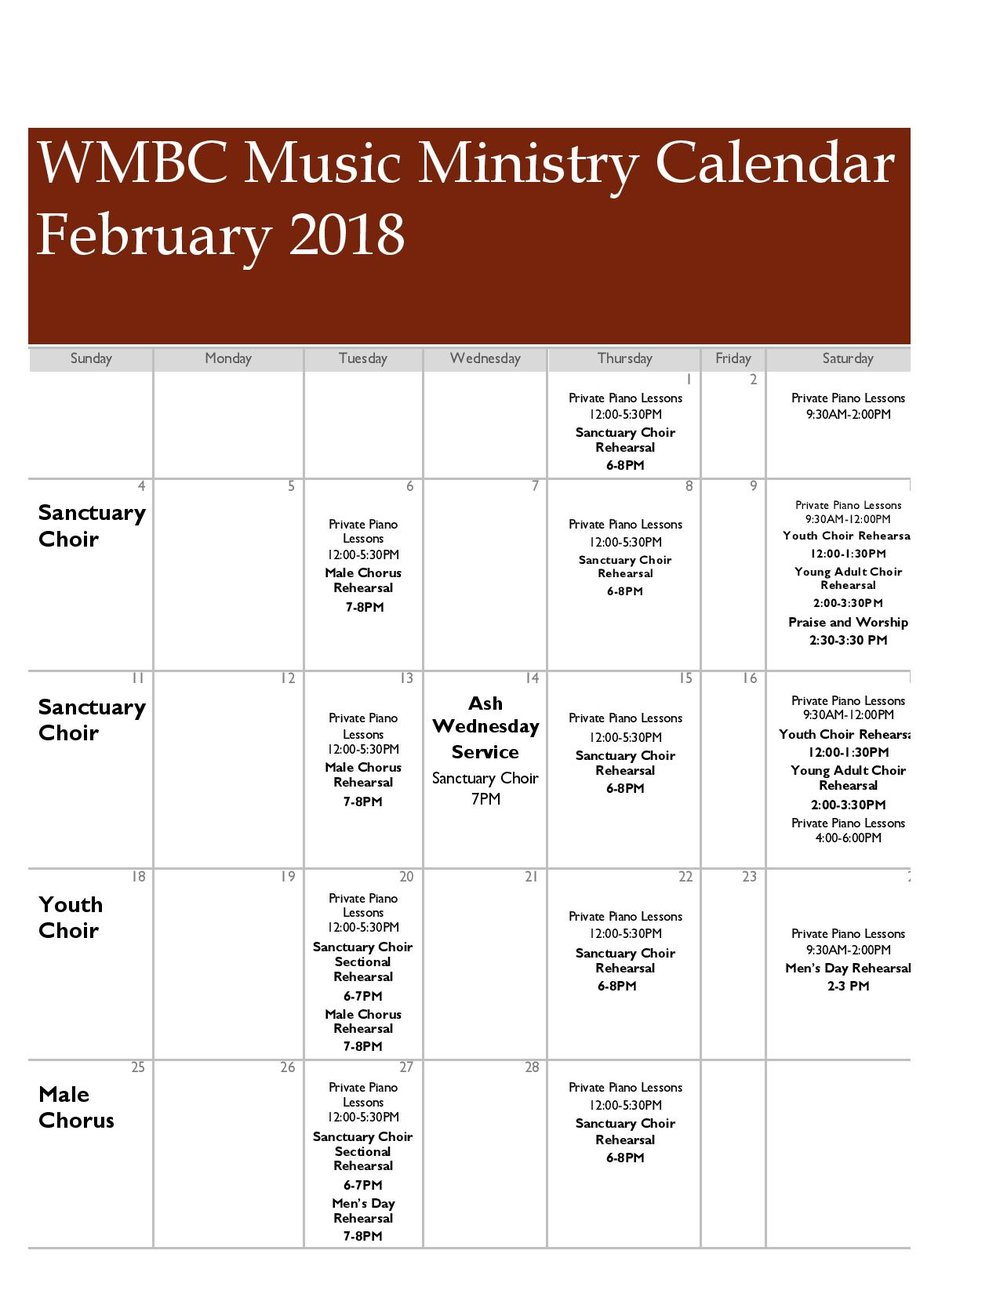 WMBC Music Ministry Newsletter February 2018  (1)-page-005.jpg